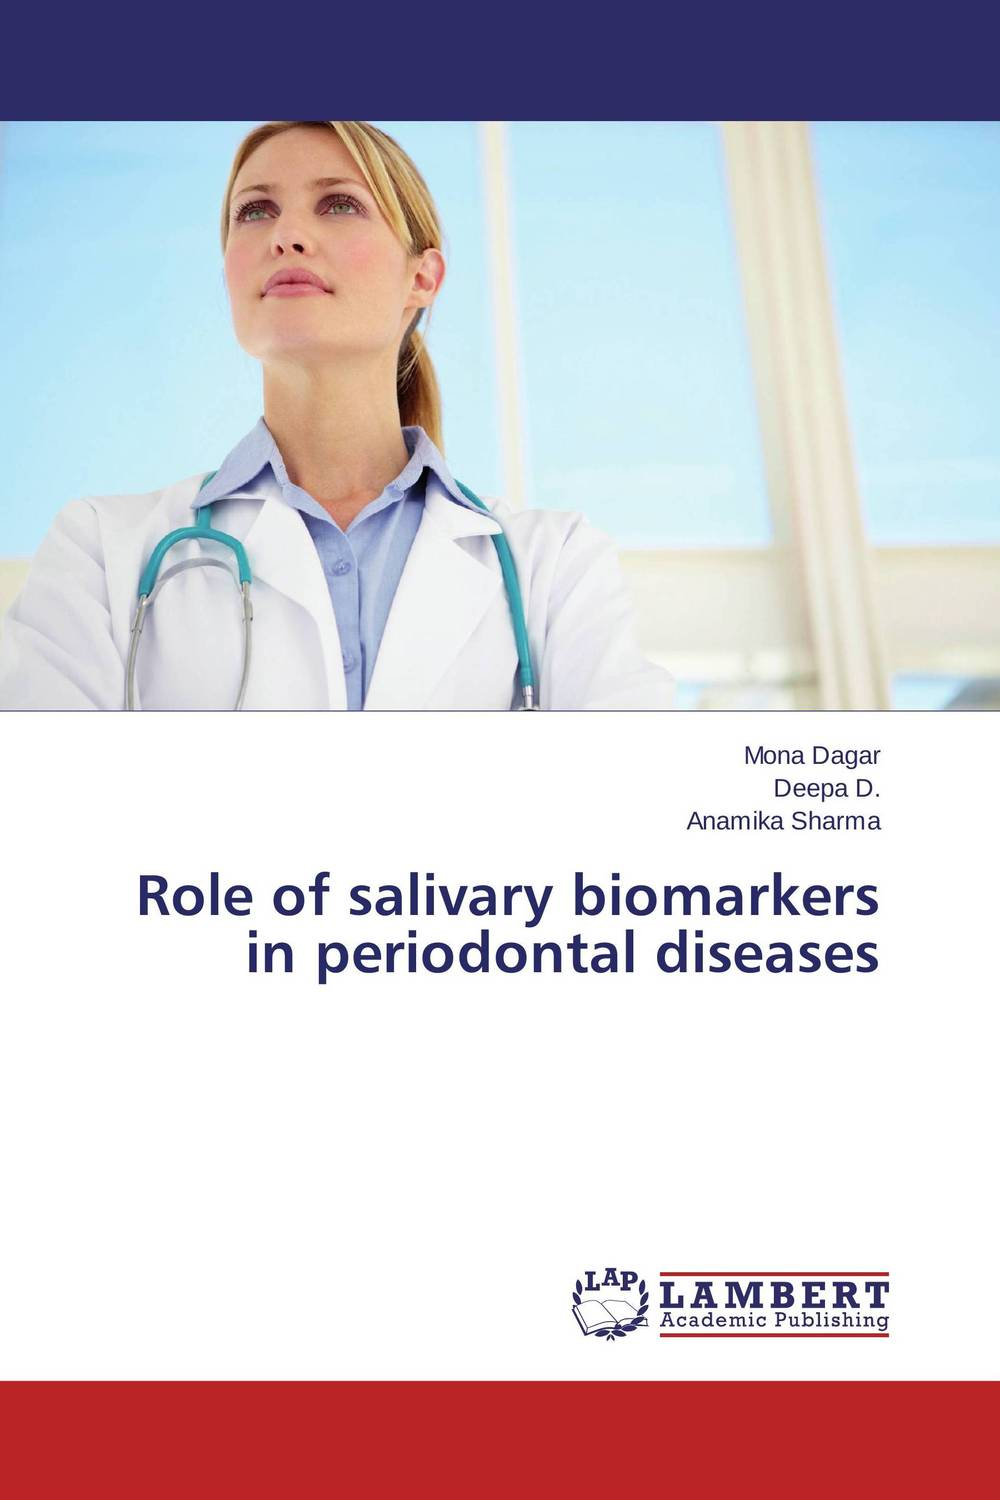 Role of salivary biomarkers in periodontal diseases new arrival classification of periodontal diseases teeth model dental patient communication model process of periodontal disease